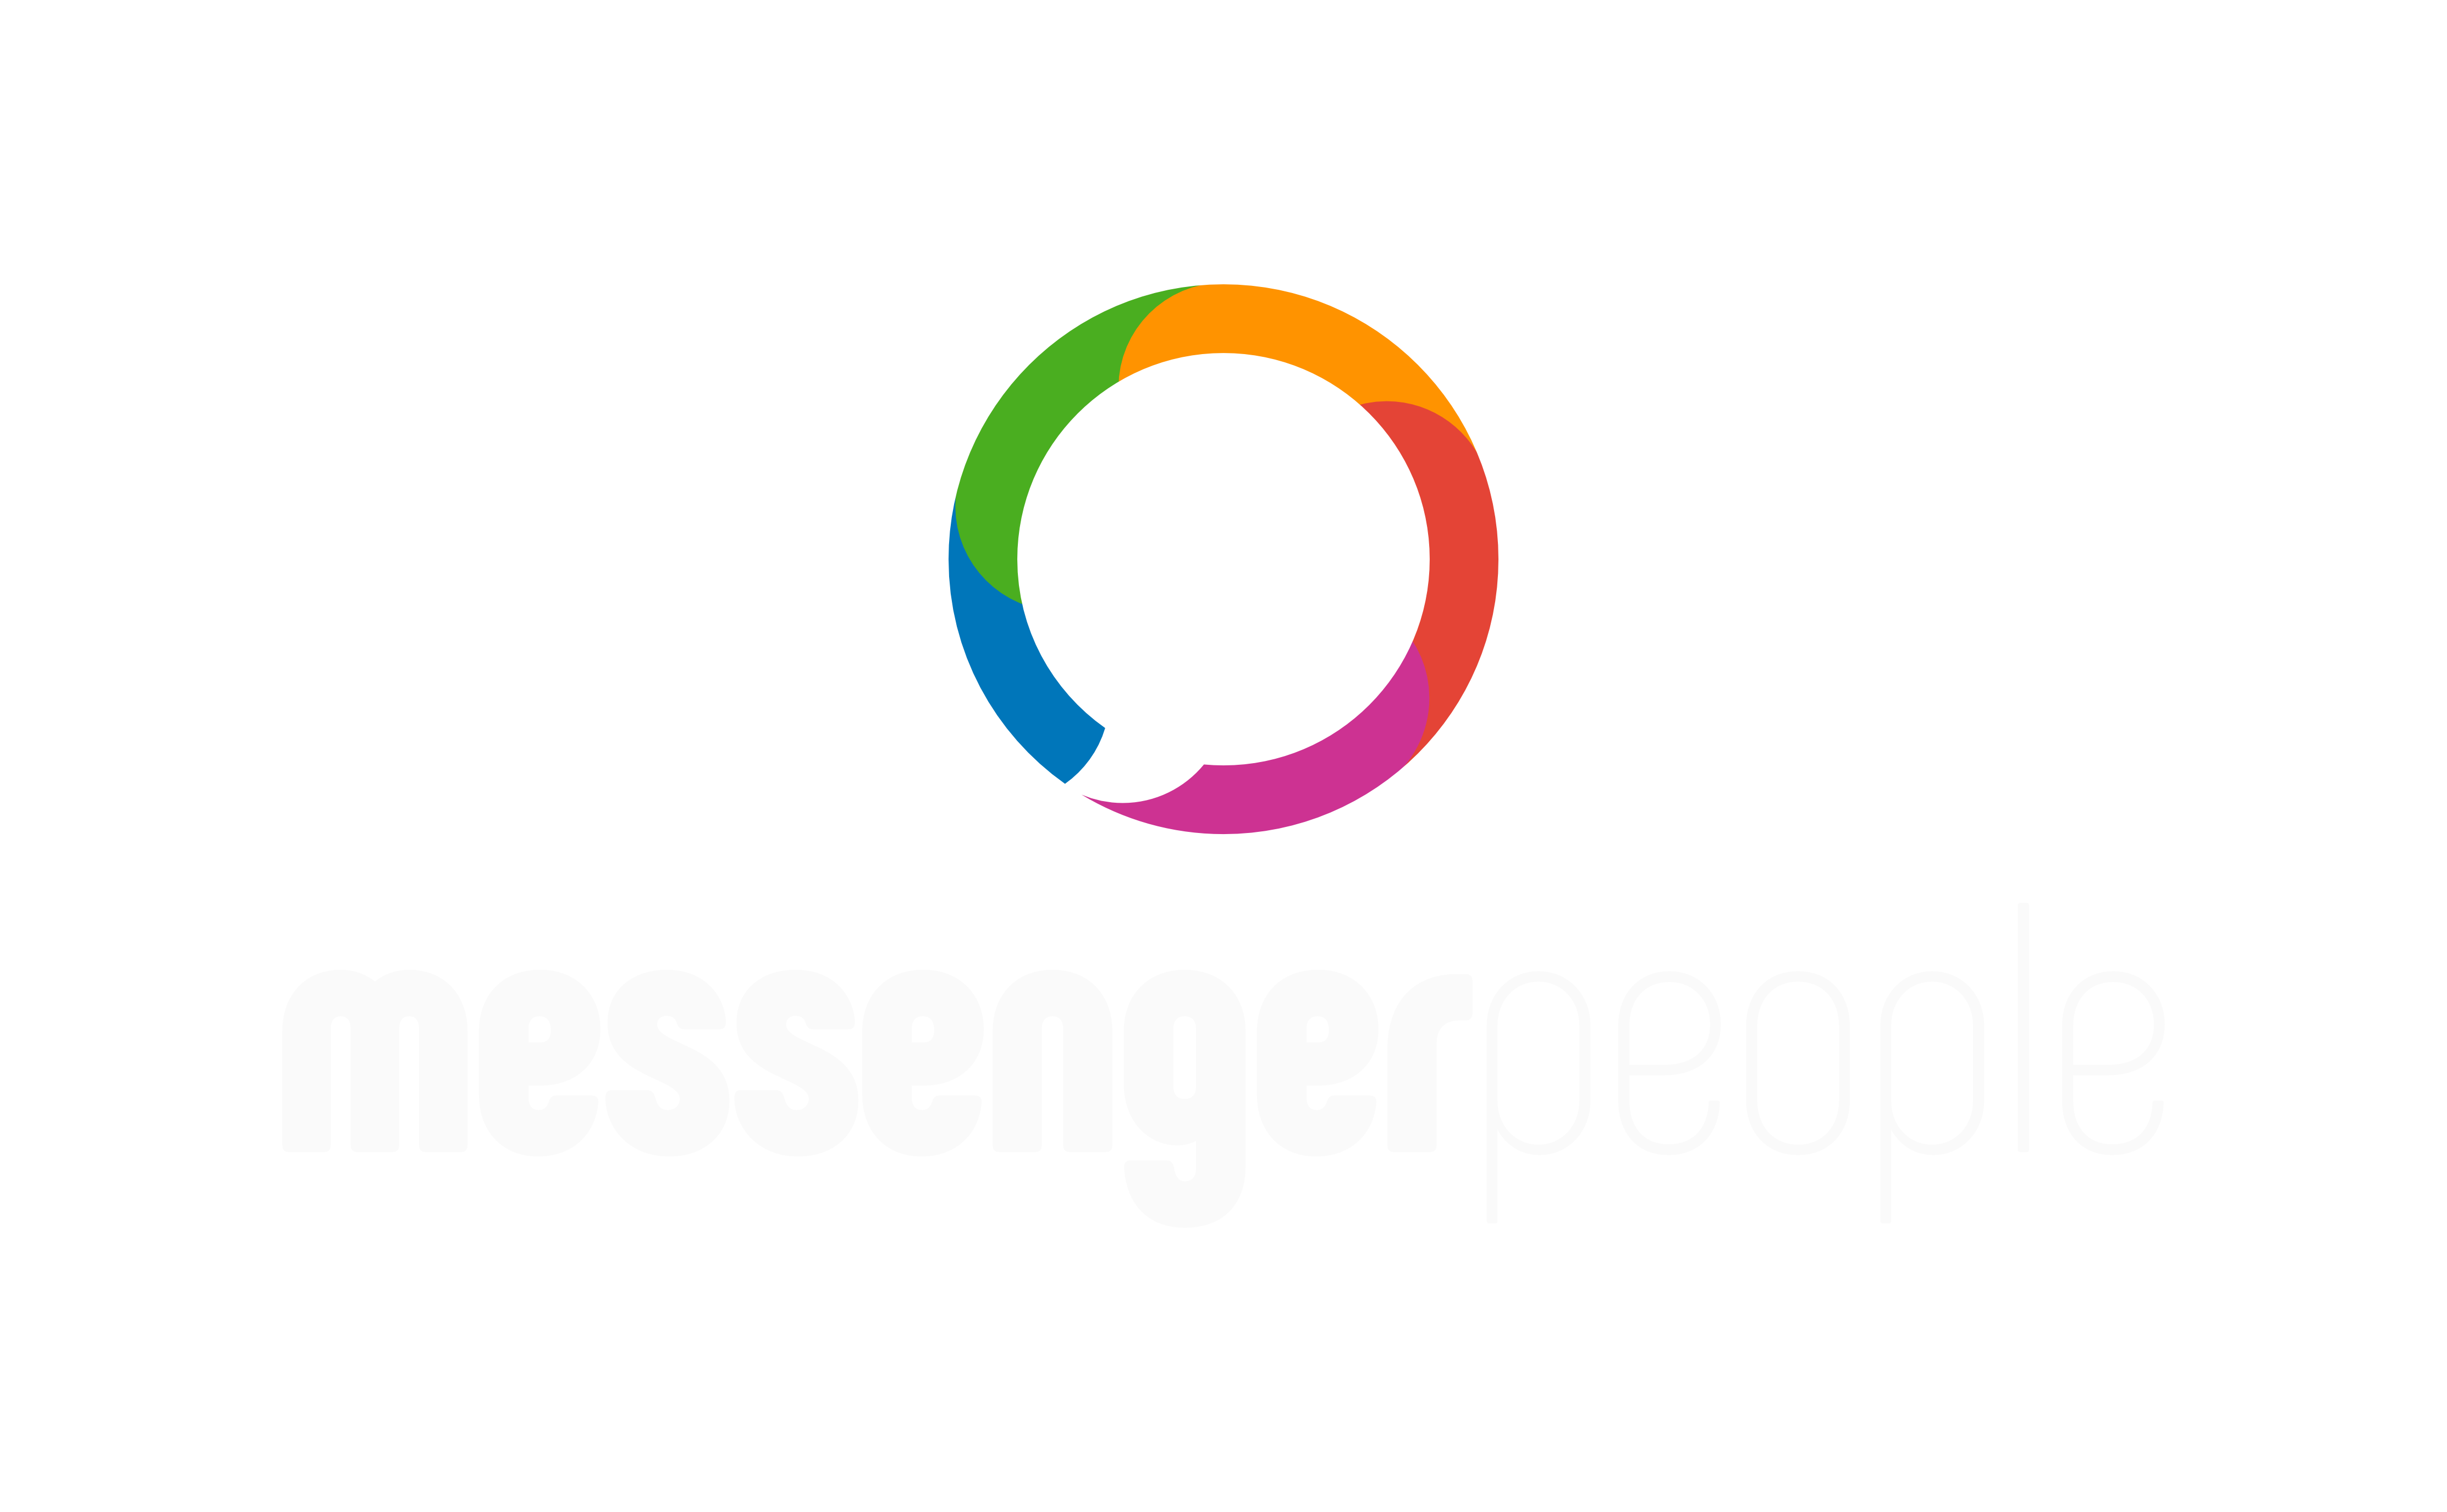 Messengerpeople Your Experts In Professional Messenger Communication